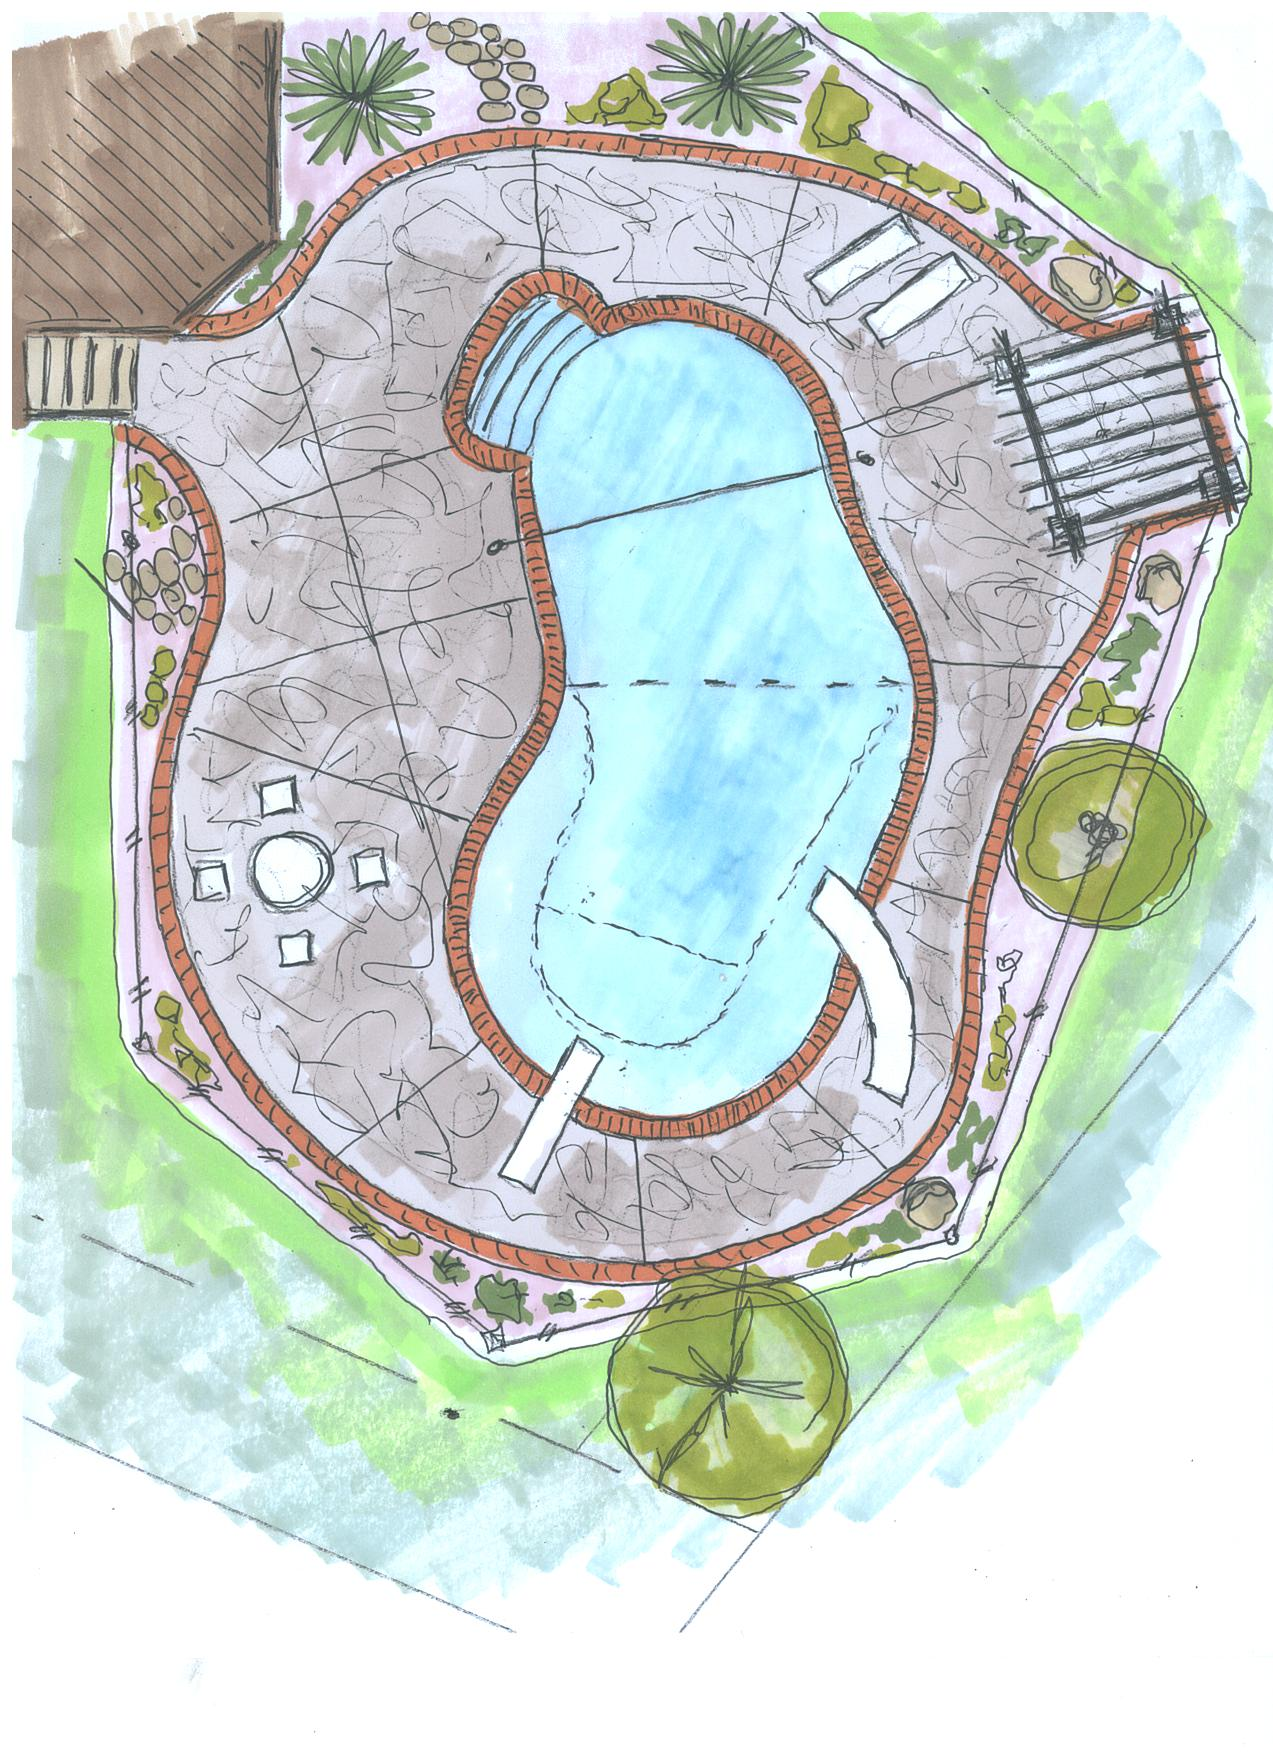 South lyon pool designs by legendary escapes pools for Pool design drawings